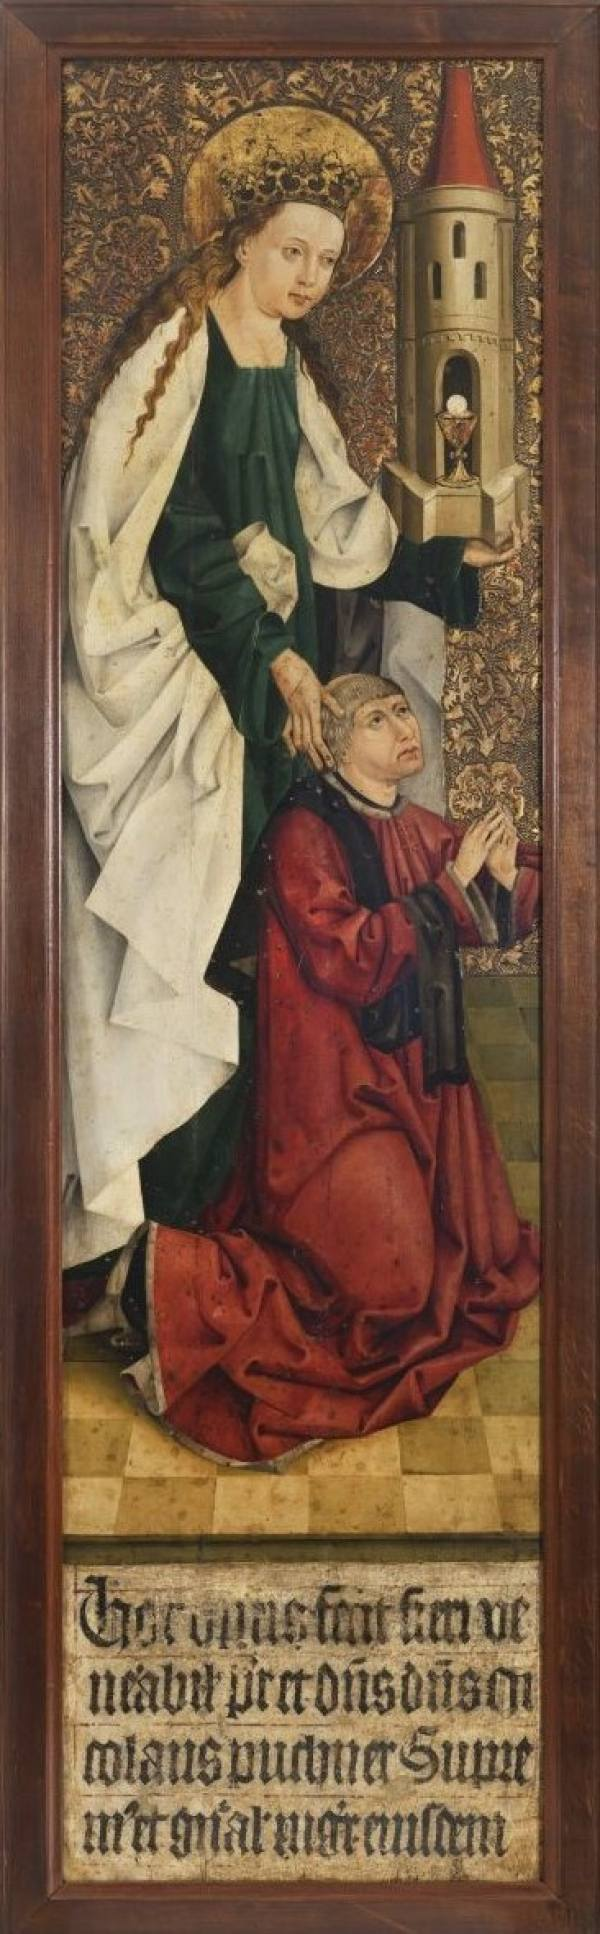 Master of the Altarpiece of the Knights of the Cross with the Red Star, Altarpiece of Nicholas Puchner, Grand Master of the Knights of the Cross with the Red Star, called Puchner Ark, 1482